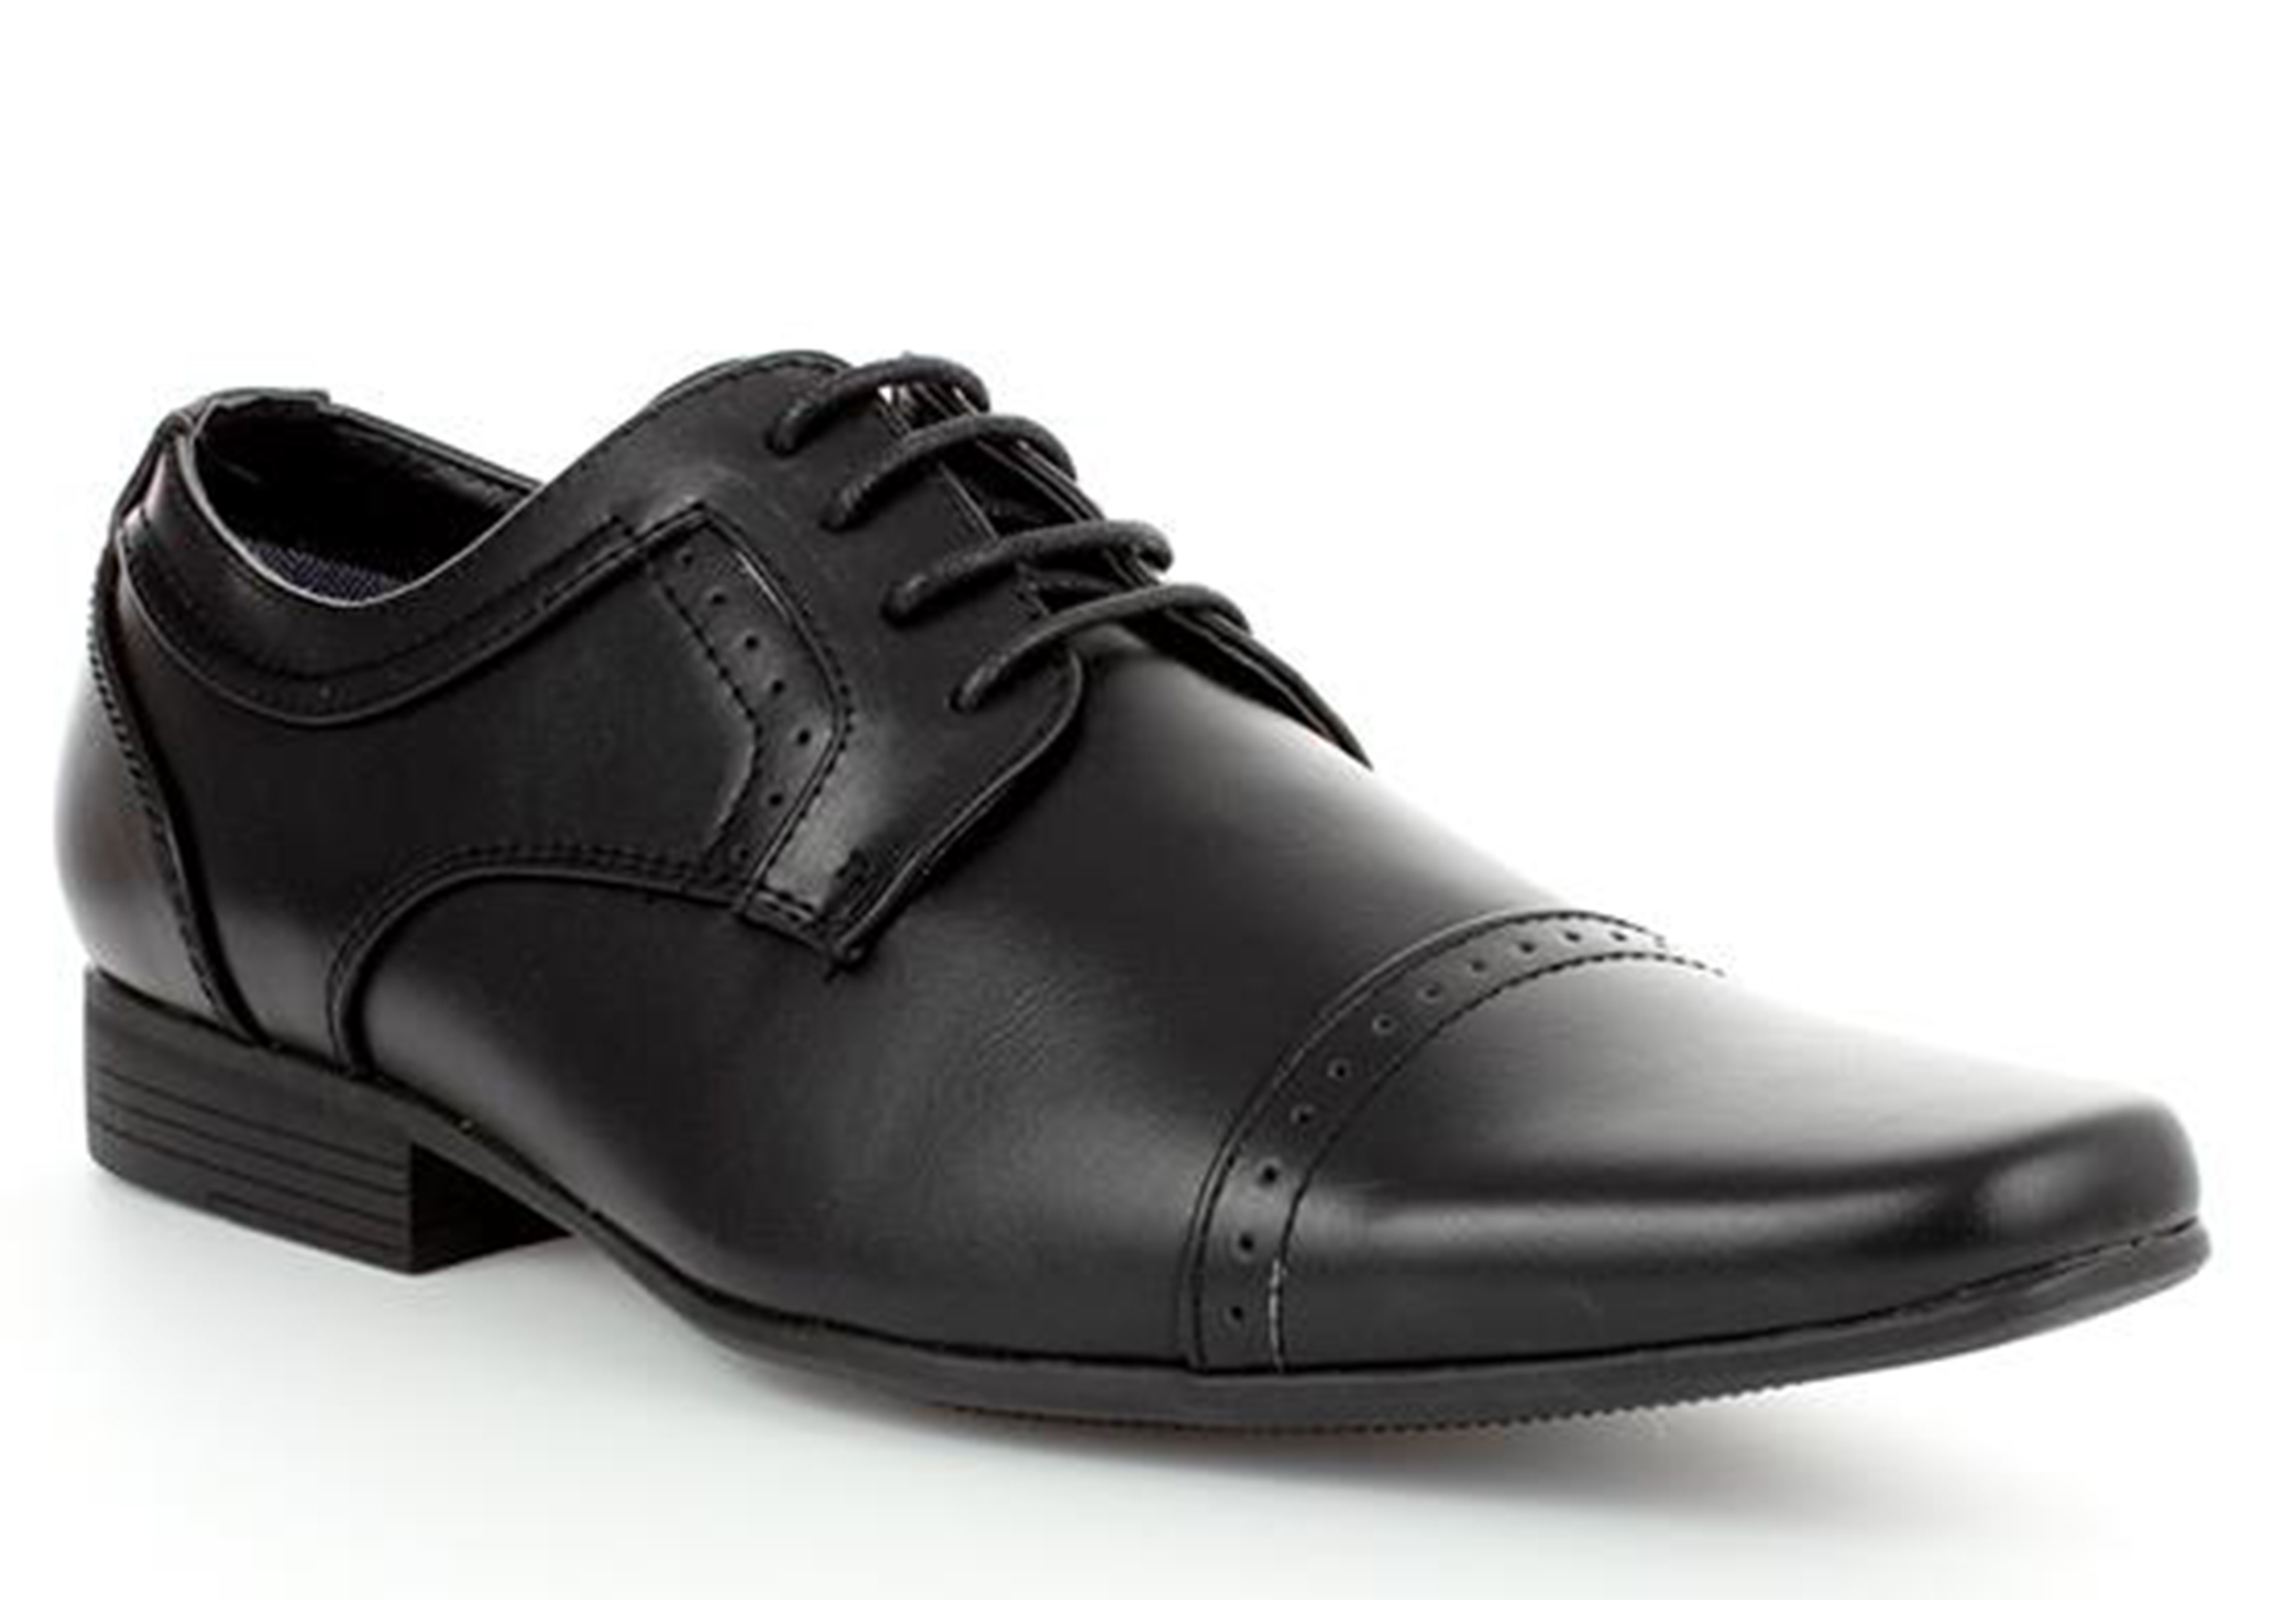 MENS-SMART-BLACK-LACE-UP-LOAFERS-MOCCASINS-WORK-WEDDING-SHOES-SIZES-6-11 thumbnail 5